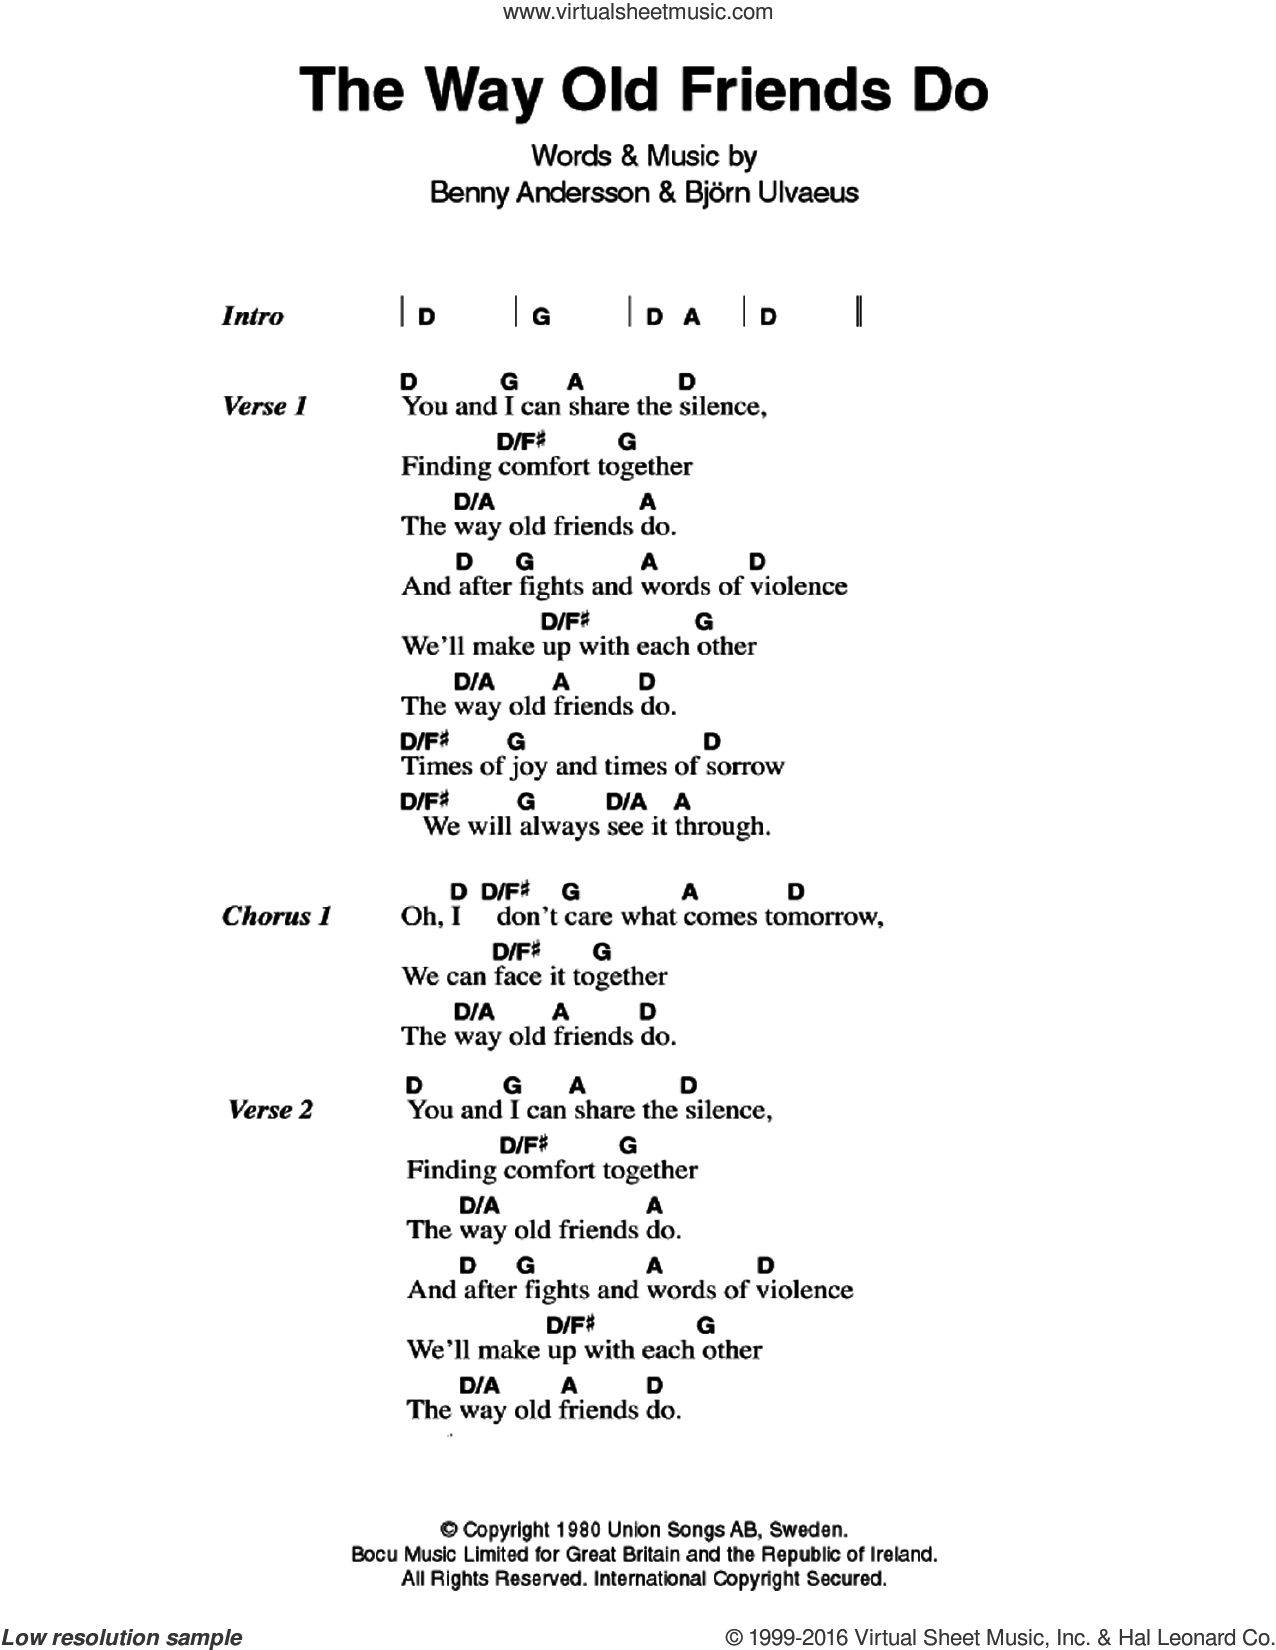 The Way Old Friends Do sheet music for guitar (chords) by ABBA, Benny Andersson and Bjorn Ulvaeus, intermediate. Score Image Preview.